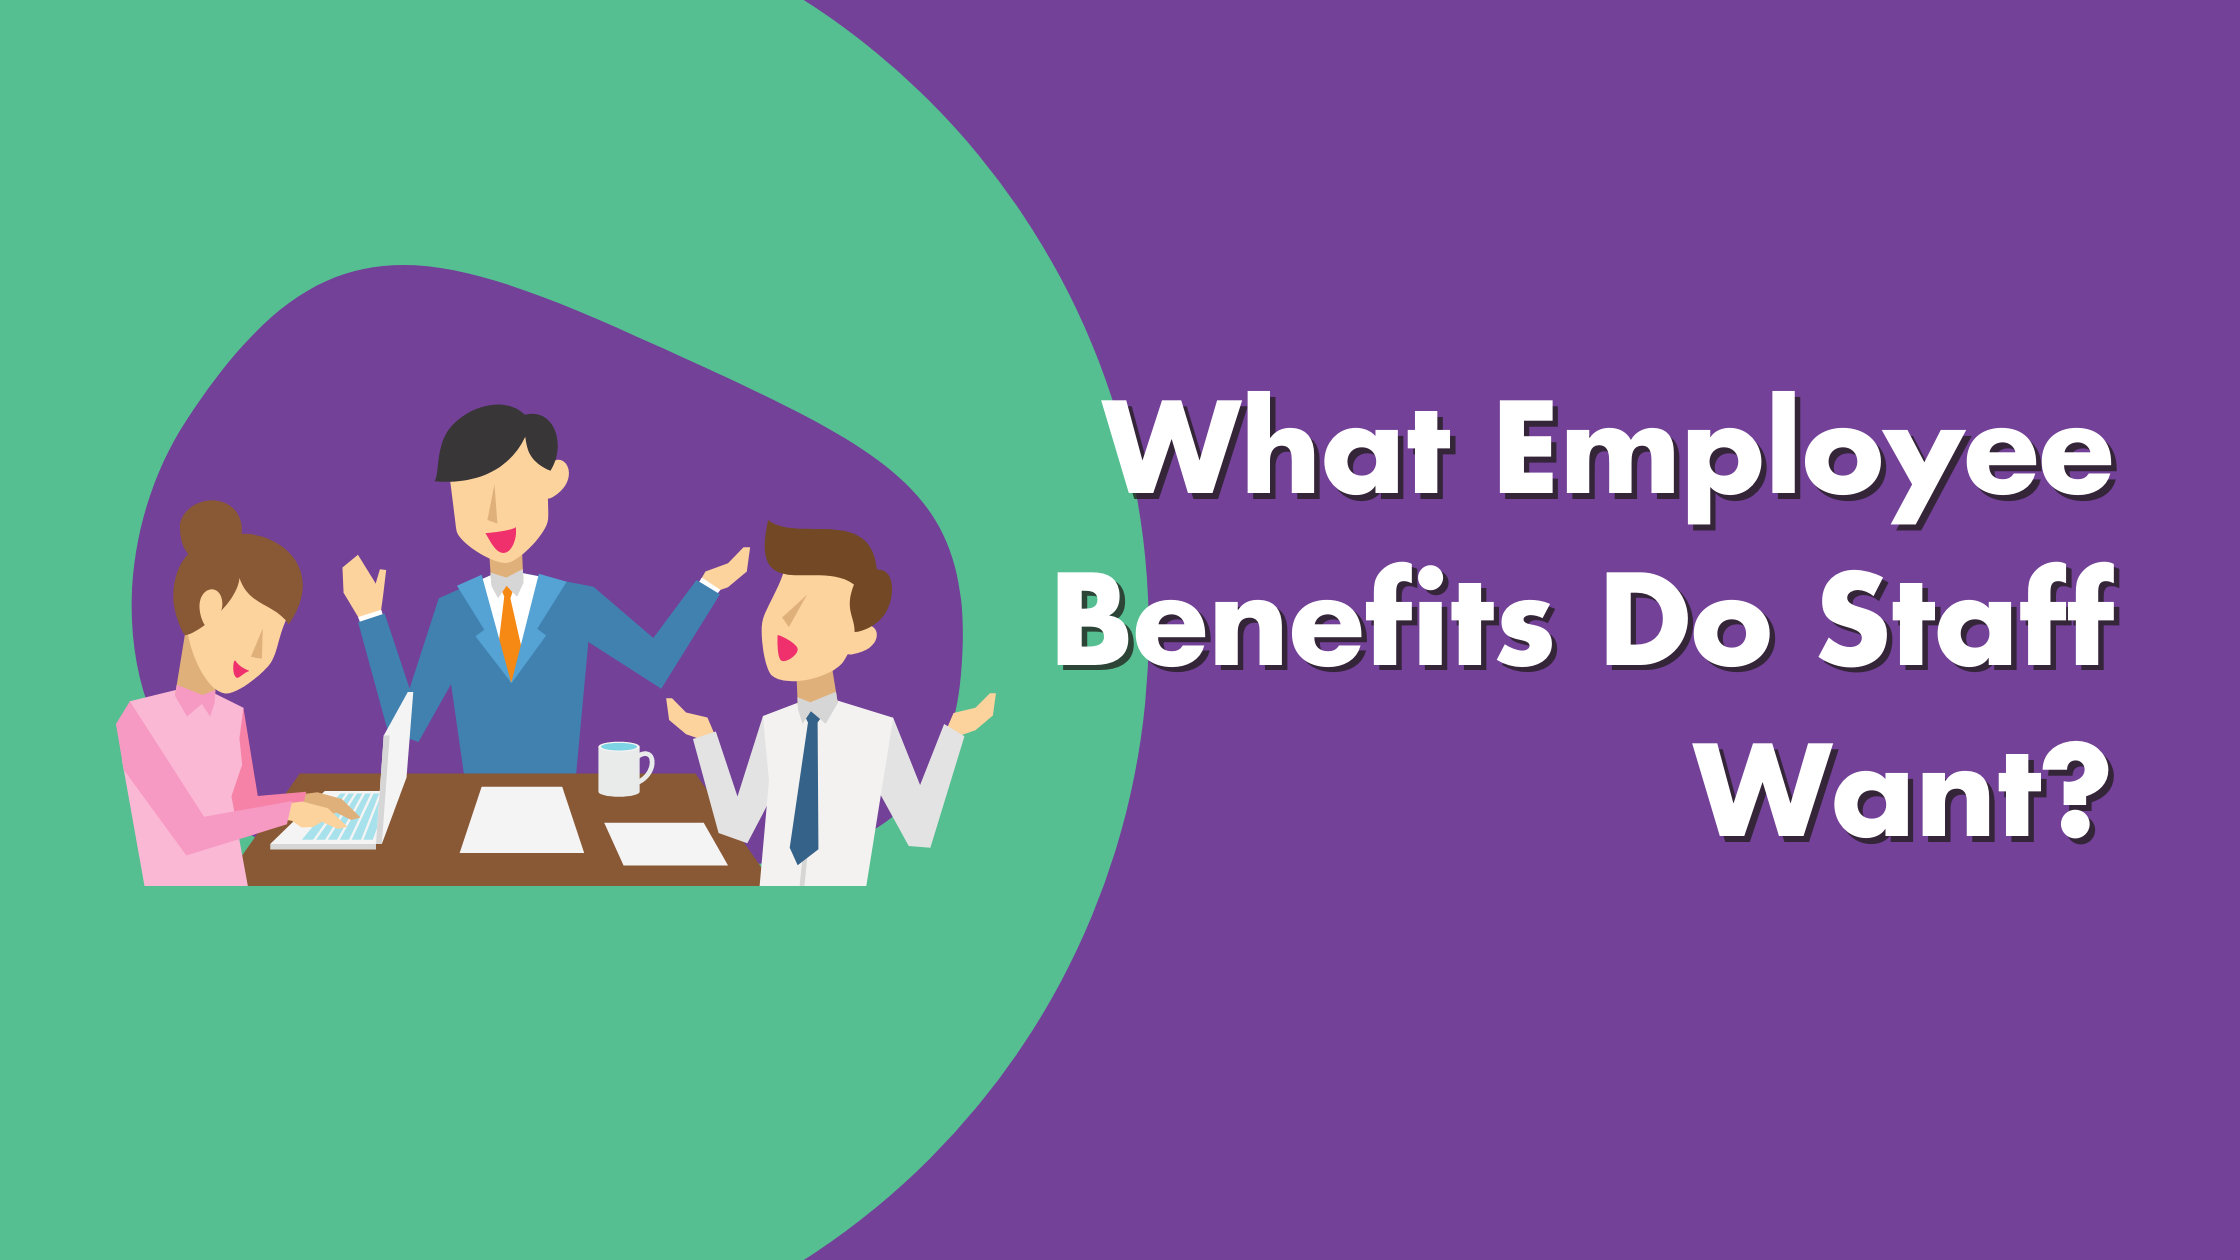 What Employee Benefits Do Staff Want